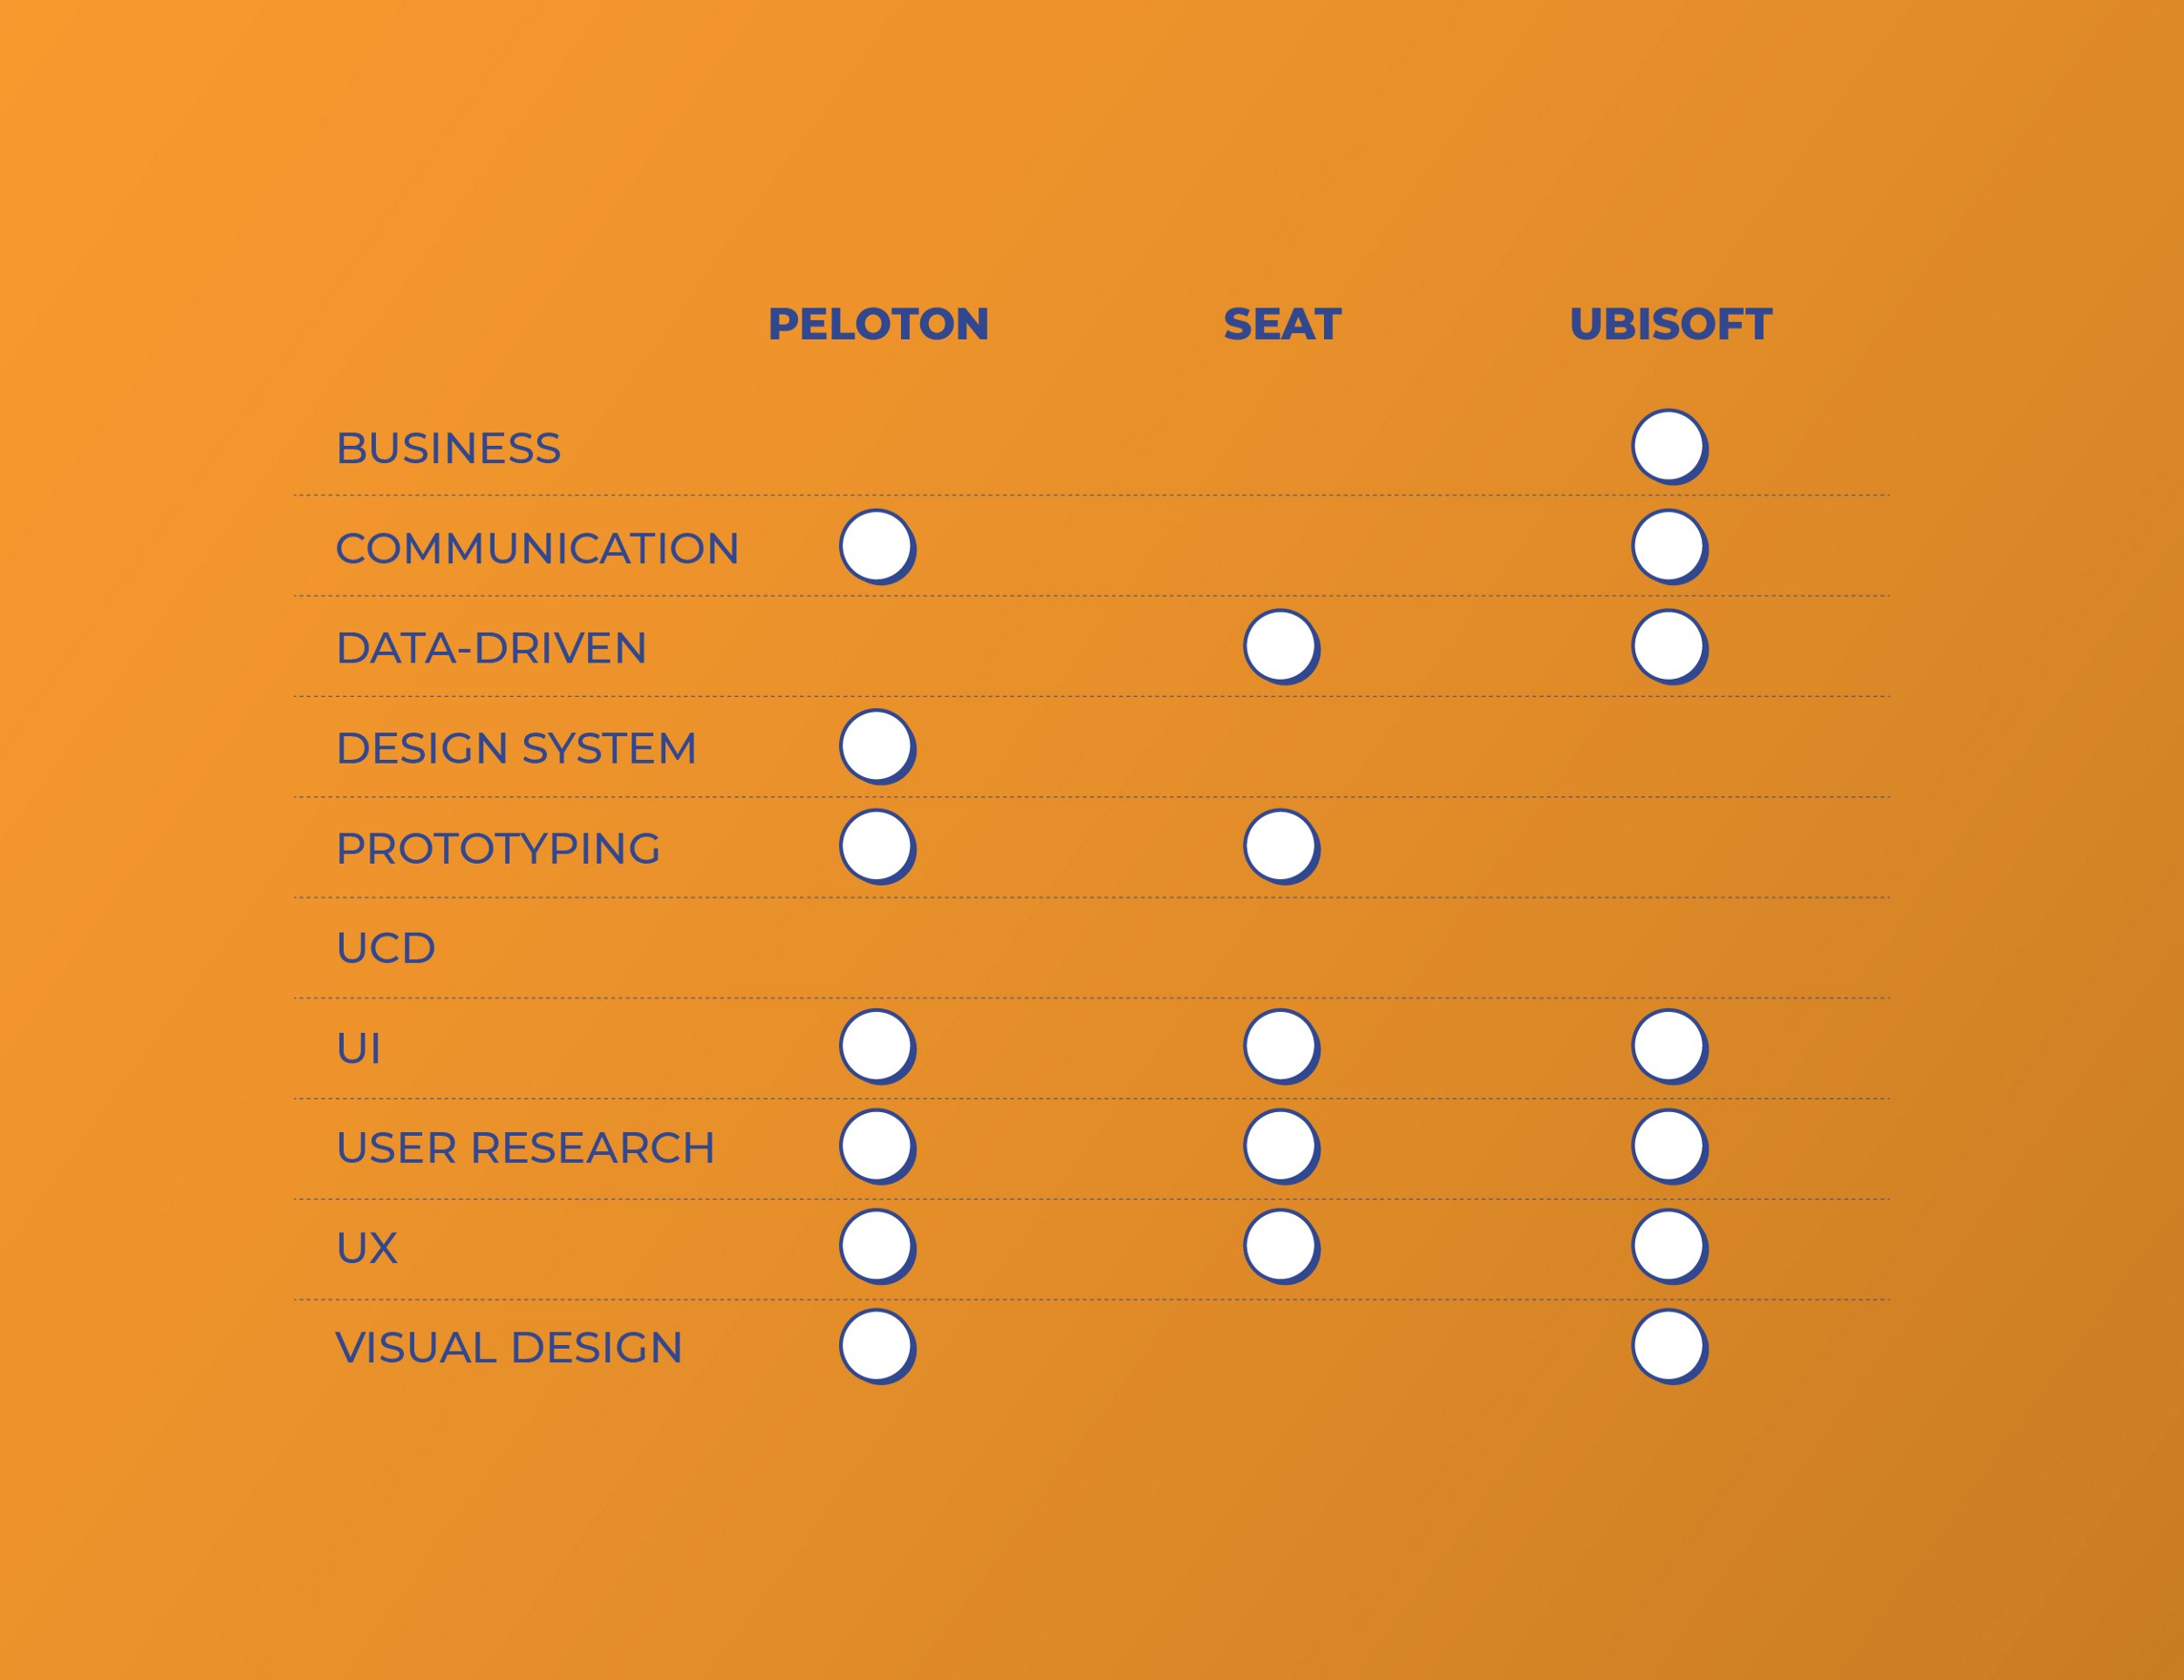 Peloton, Seat and Ubisoft requests for Visual Designers: sometimes similar, sometimes different.